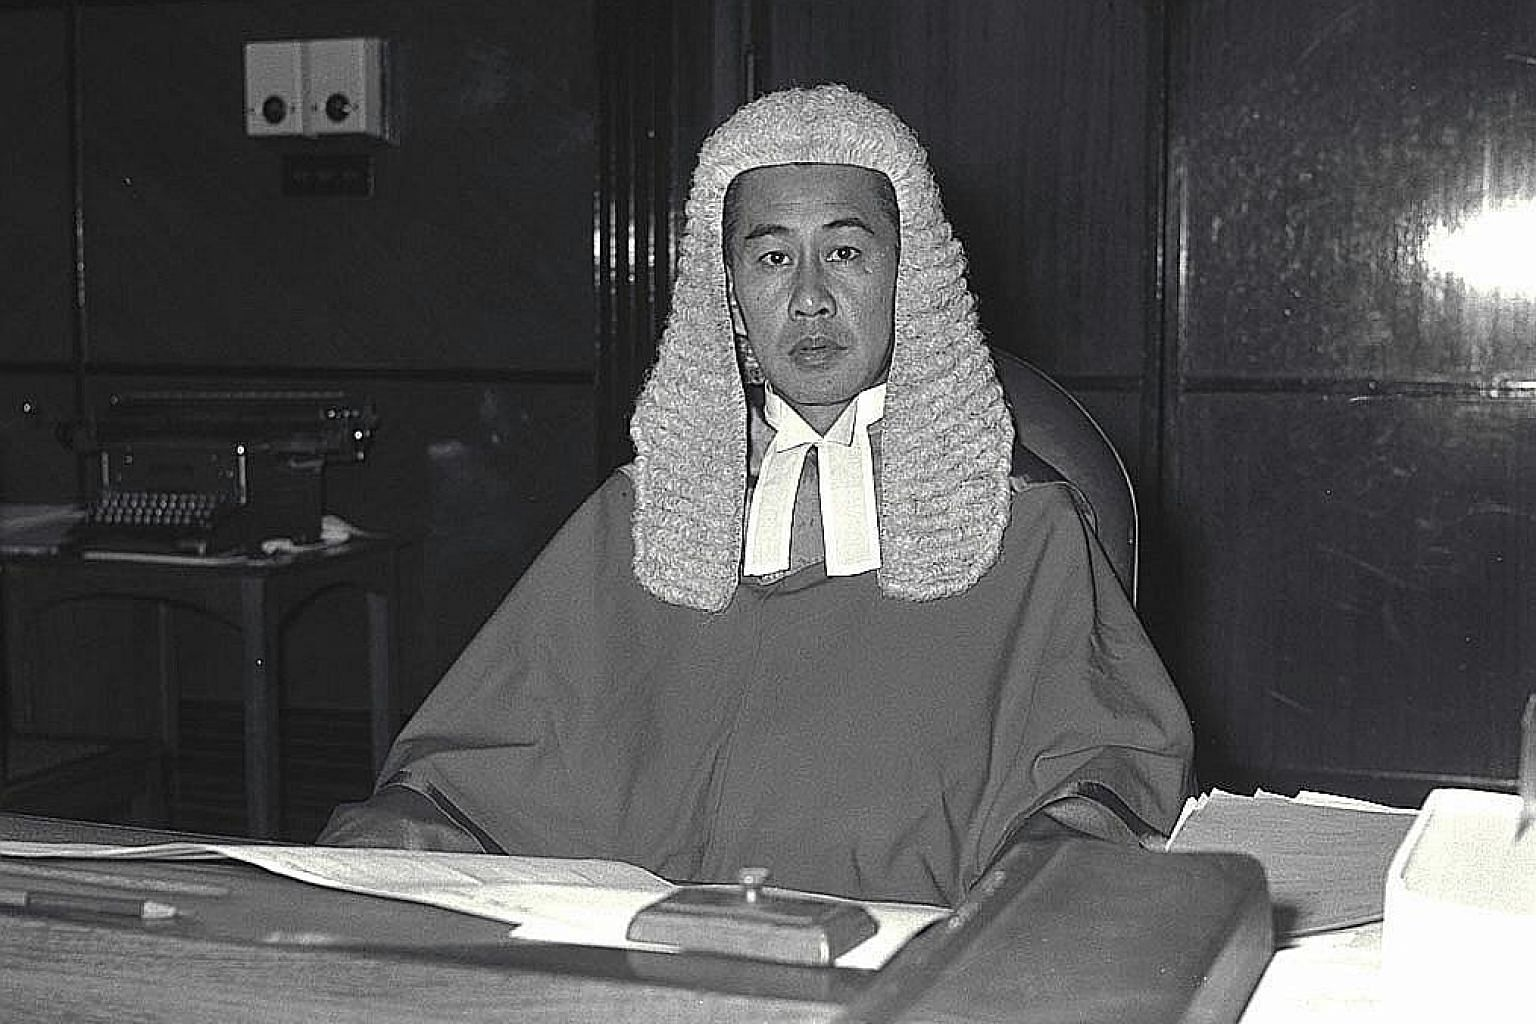 Chief Justice Wee Chong Jin was Singapore's longest-serving Chief Justice, and was in office for 27 years.